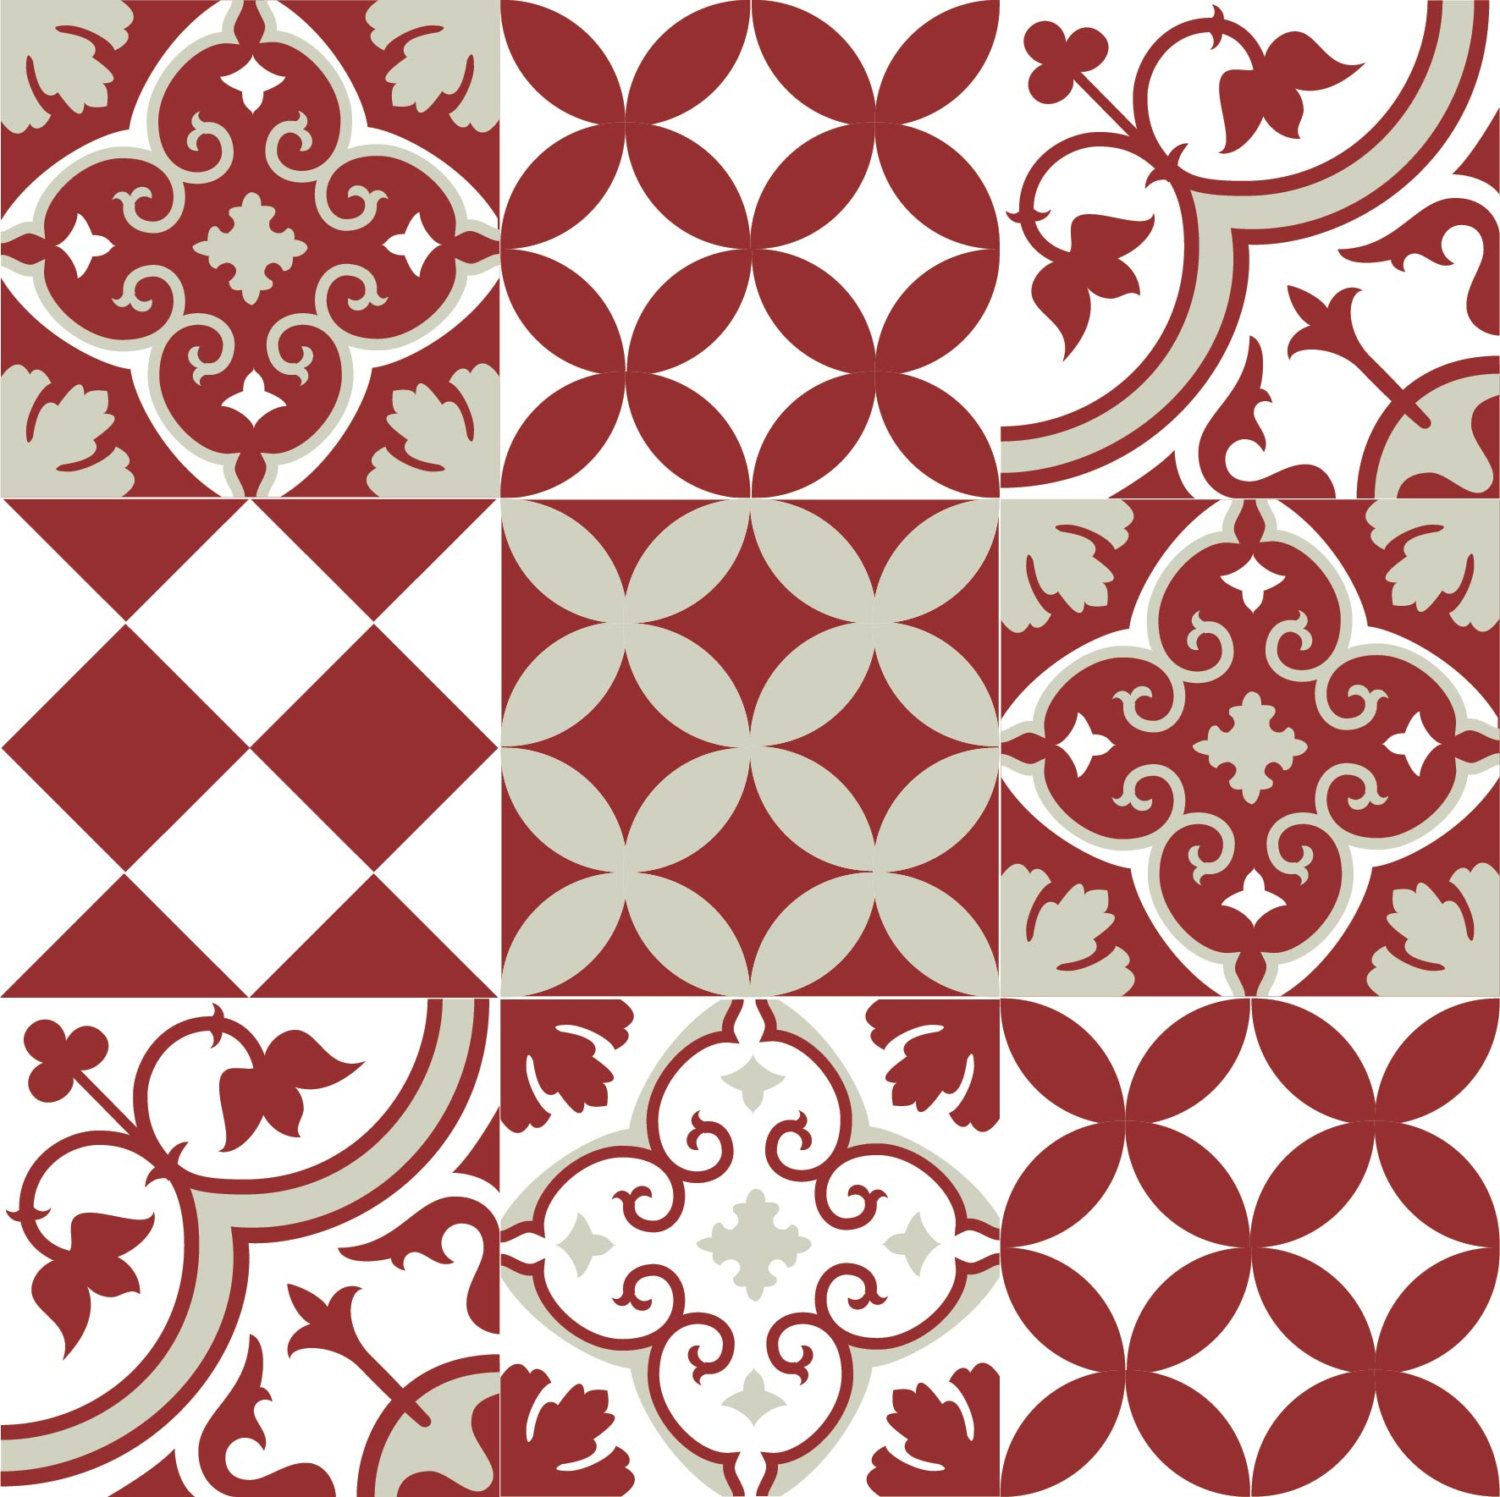 mix-tile-decals-kitchenbathroom-tiles-vinyl-floor-tiles-free-shipping-design-311-5897b1673.jpg